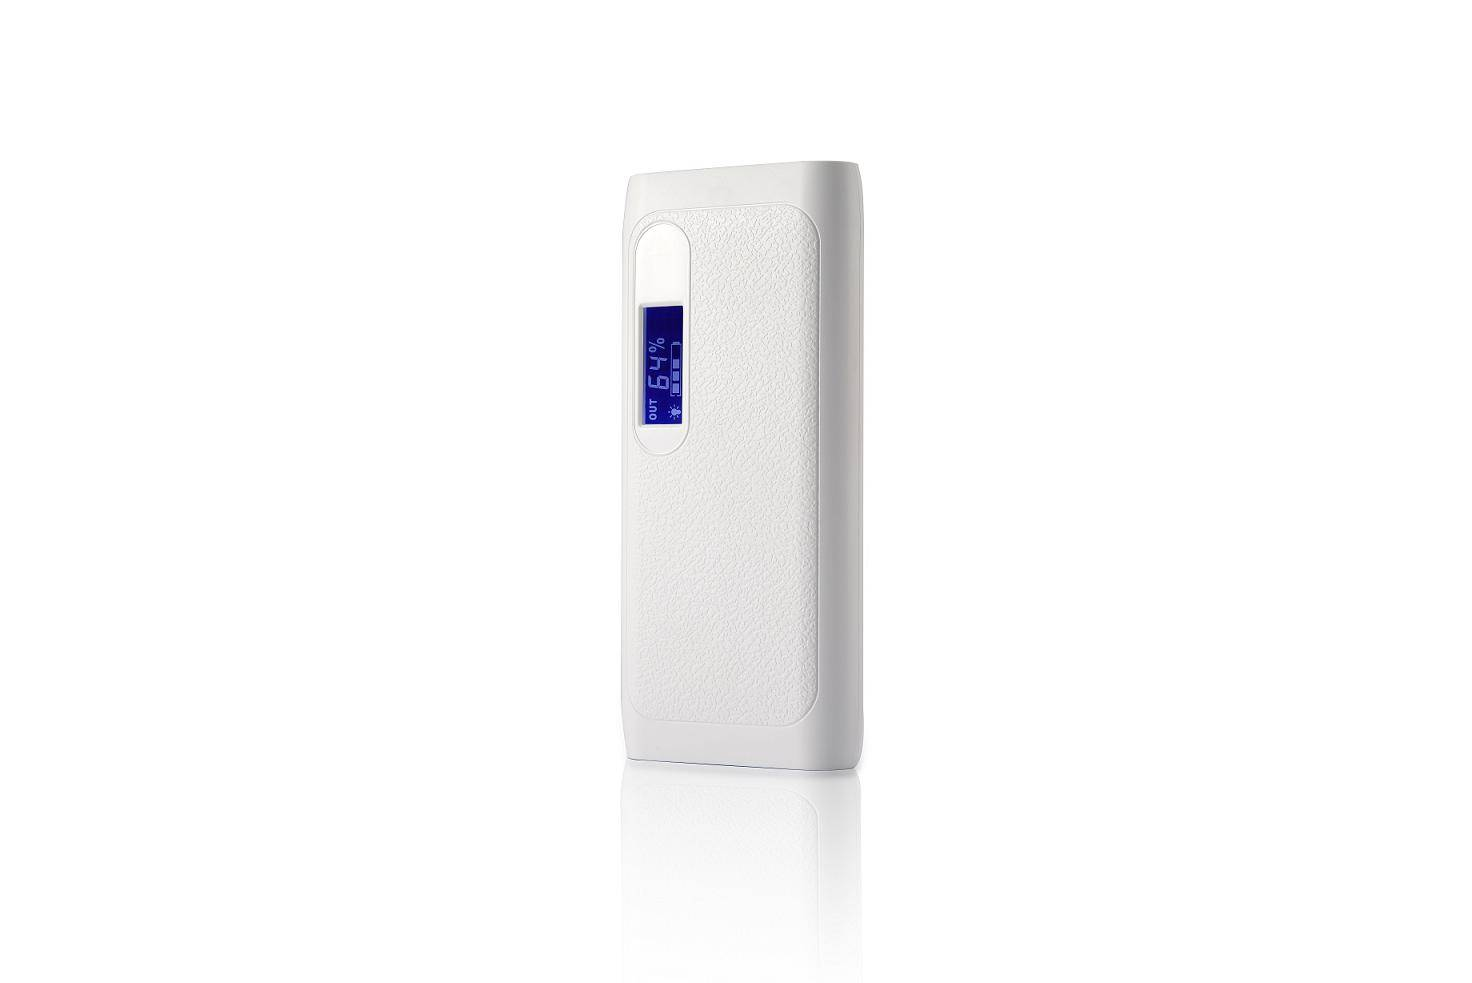 Hot Sale Power Bank with LED Light and Display 100% Capacity 8000mah One Year Warranty